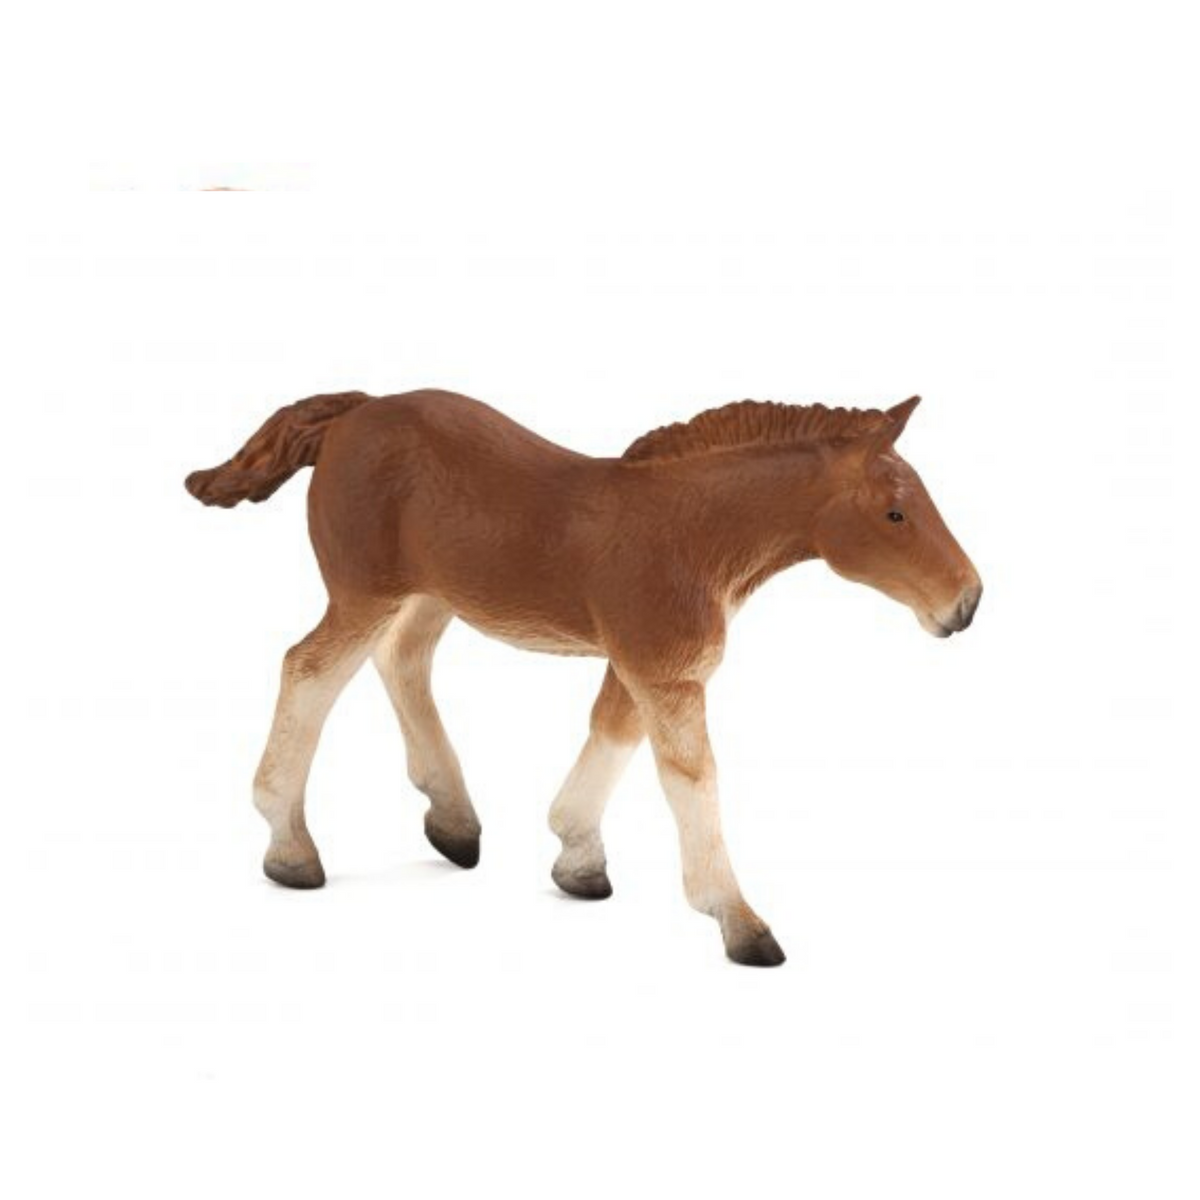 Suffolk Punch Foal Animal Planet 387196